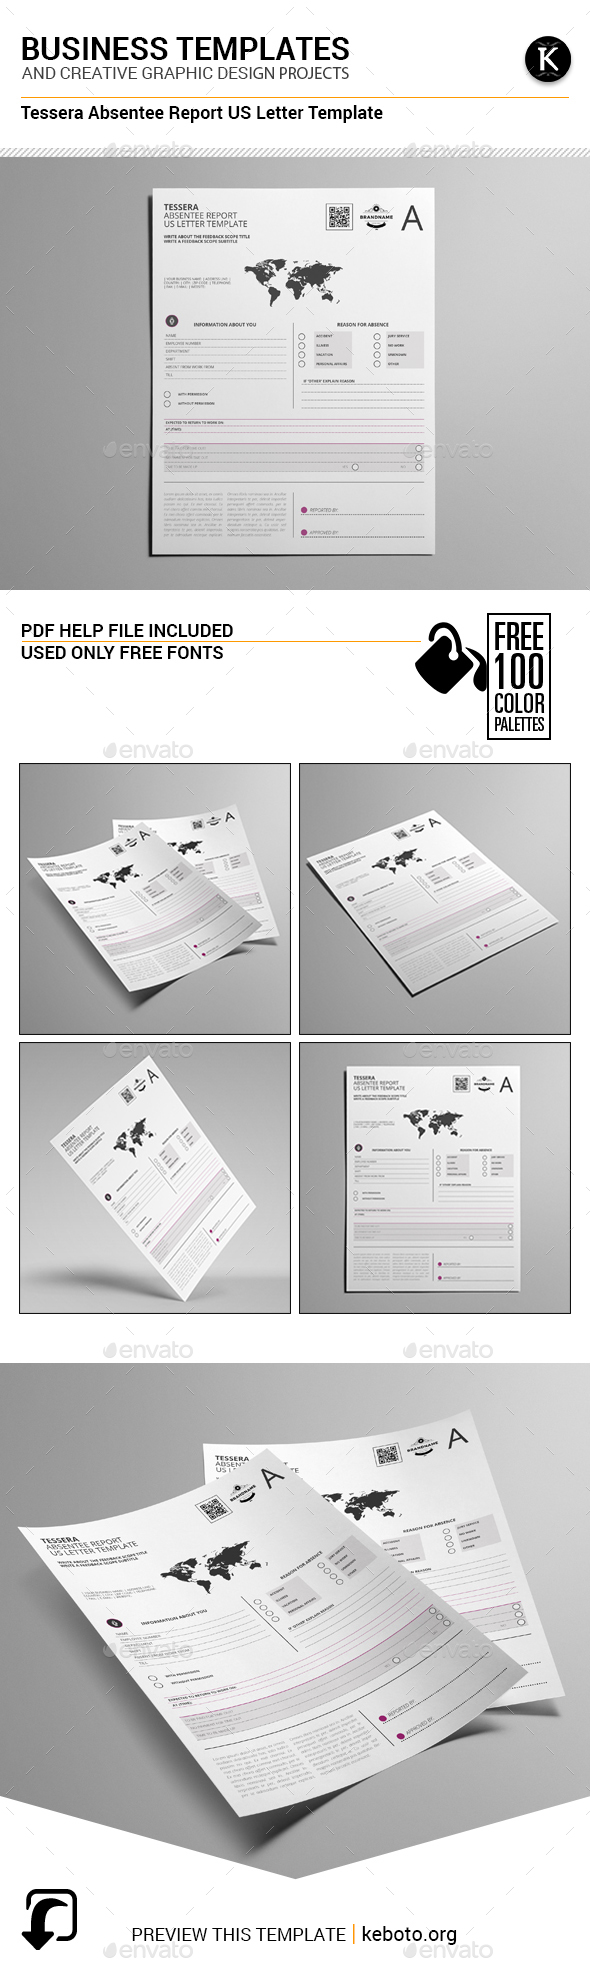 Tessera Absentee Report US Letter Template - Miscellaneous Print Templates